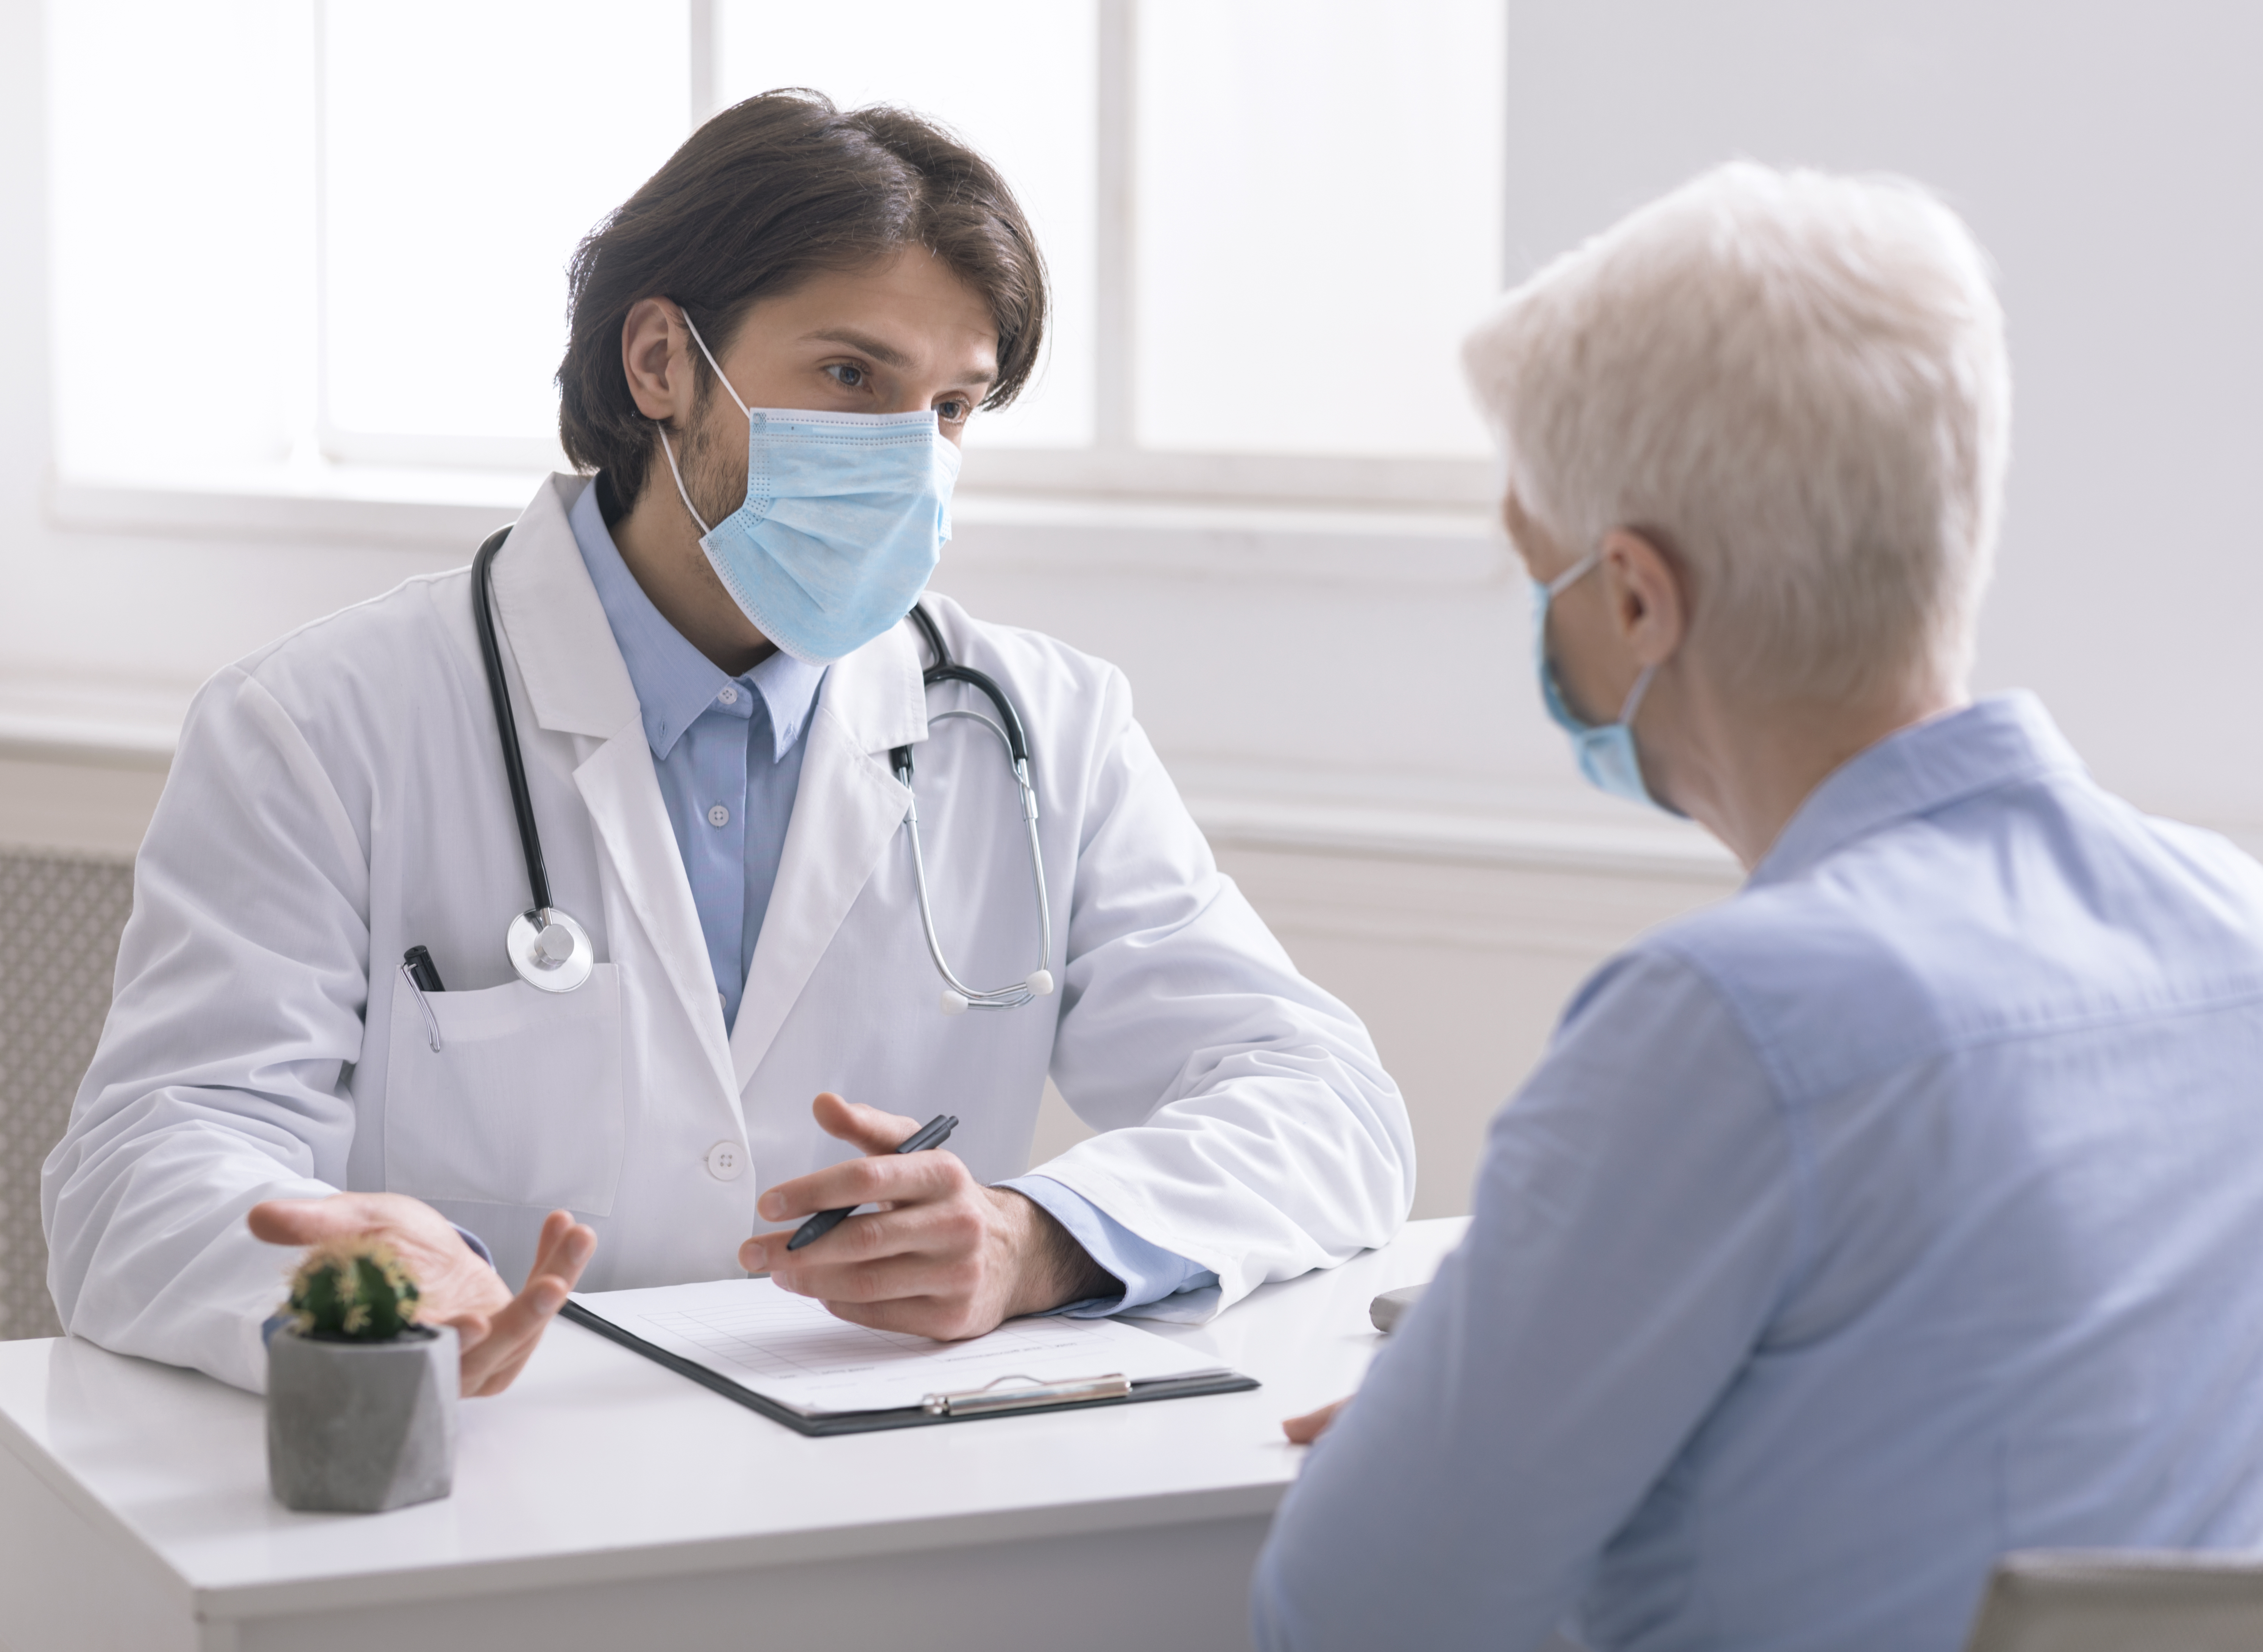 Safety medicine. Geriatrician in medical mask talking with senior patient in office